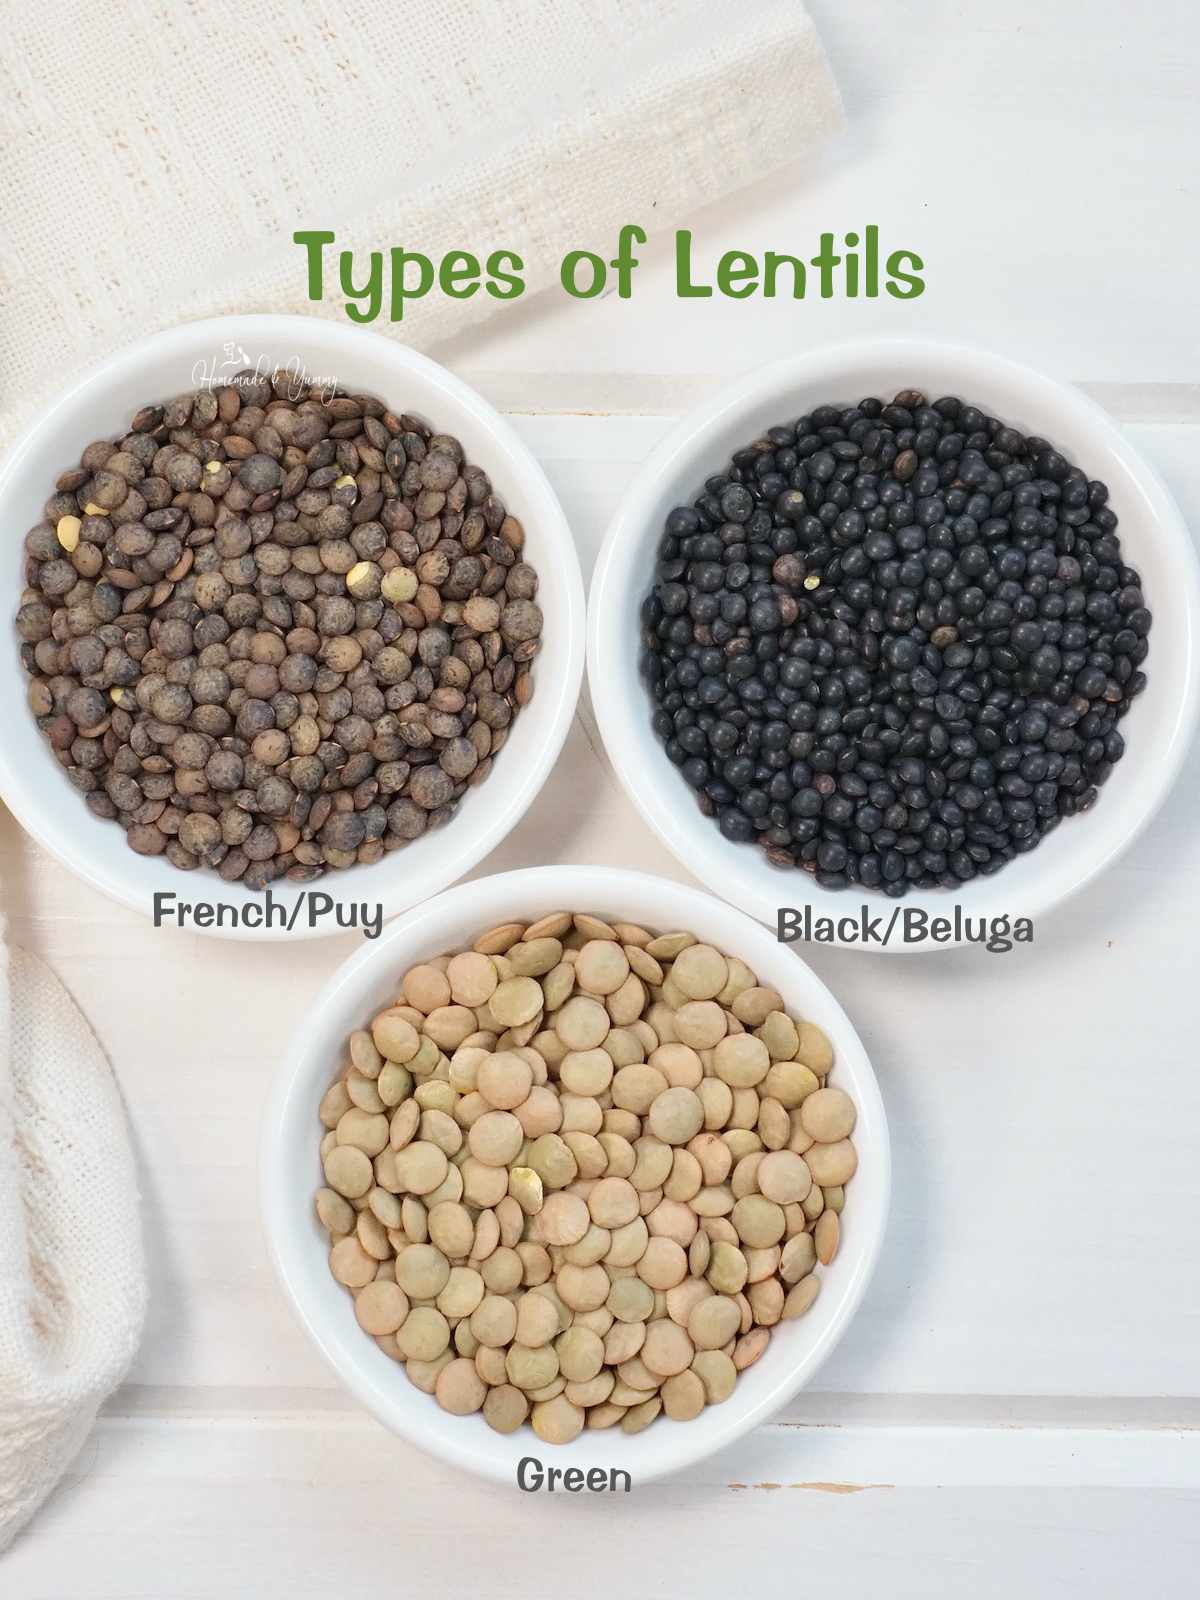 3 types of lentils, green, black and French